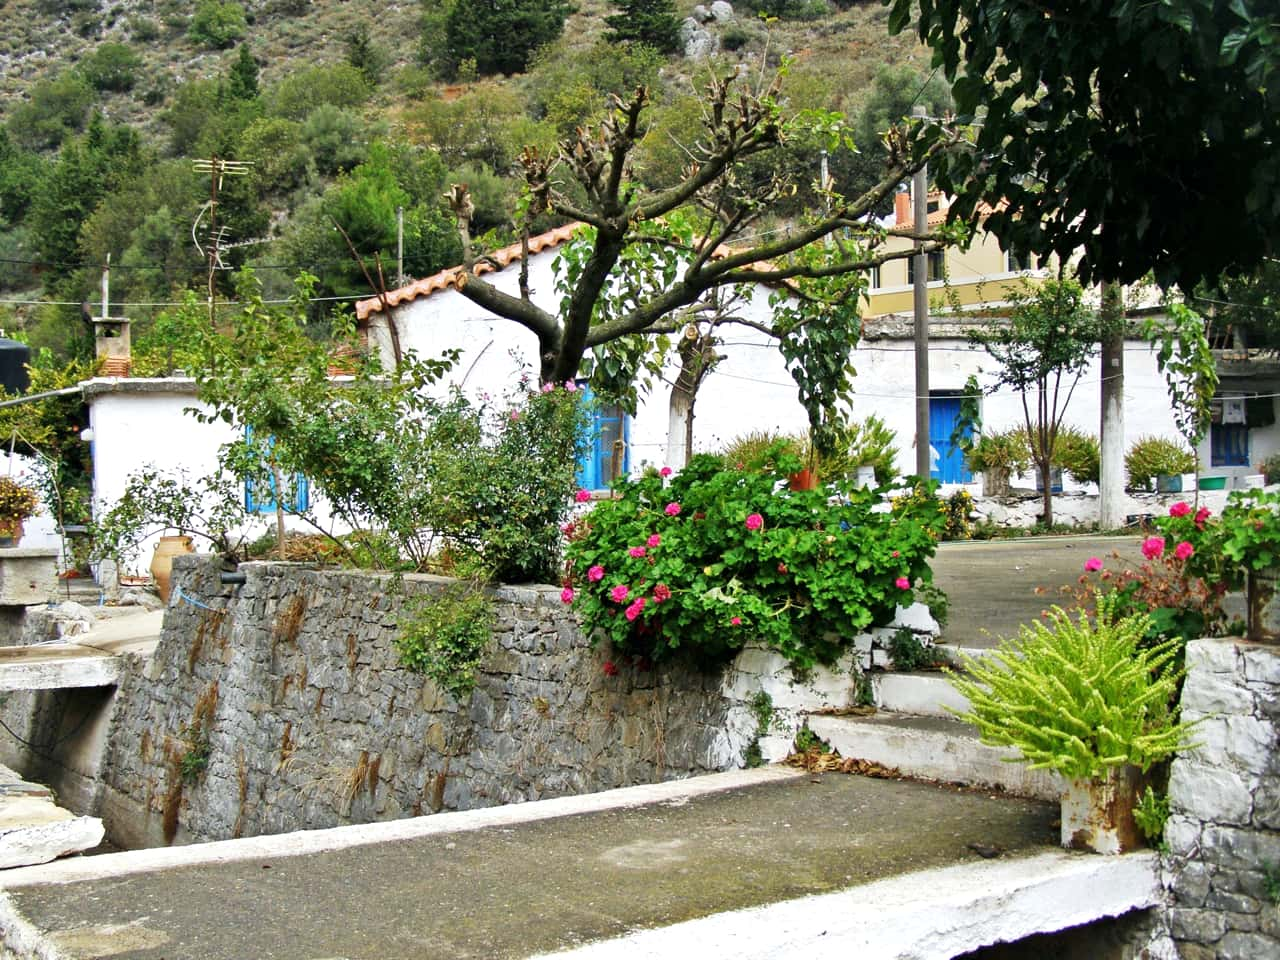 Traditional Villages Experience In Chania Crete, traditional villases private tour, traditional village excursion, cretan food, social tour chania crete, best private tour chania crete, activities chania crete, history culture tour chania, agrotourism ethnography chania crete